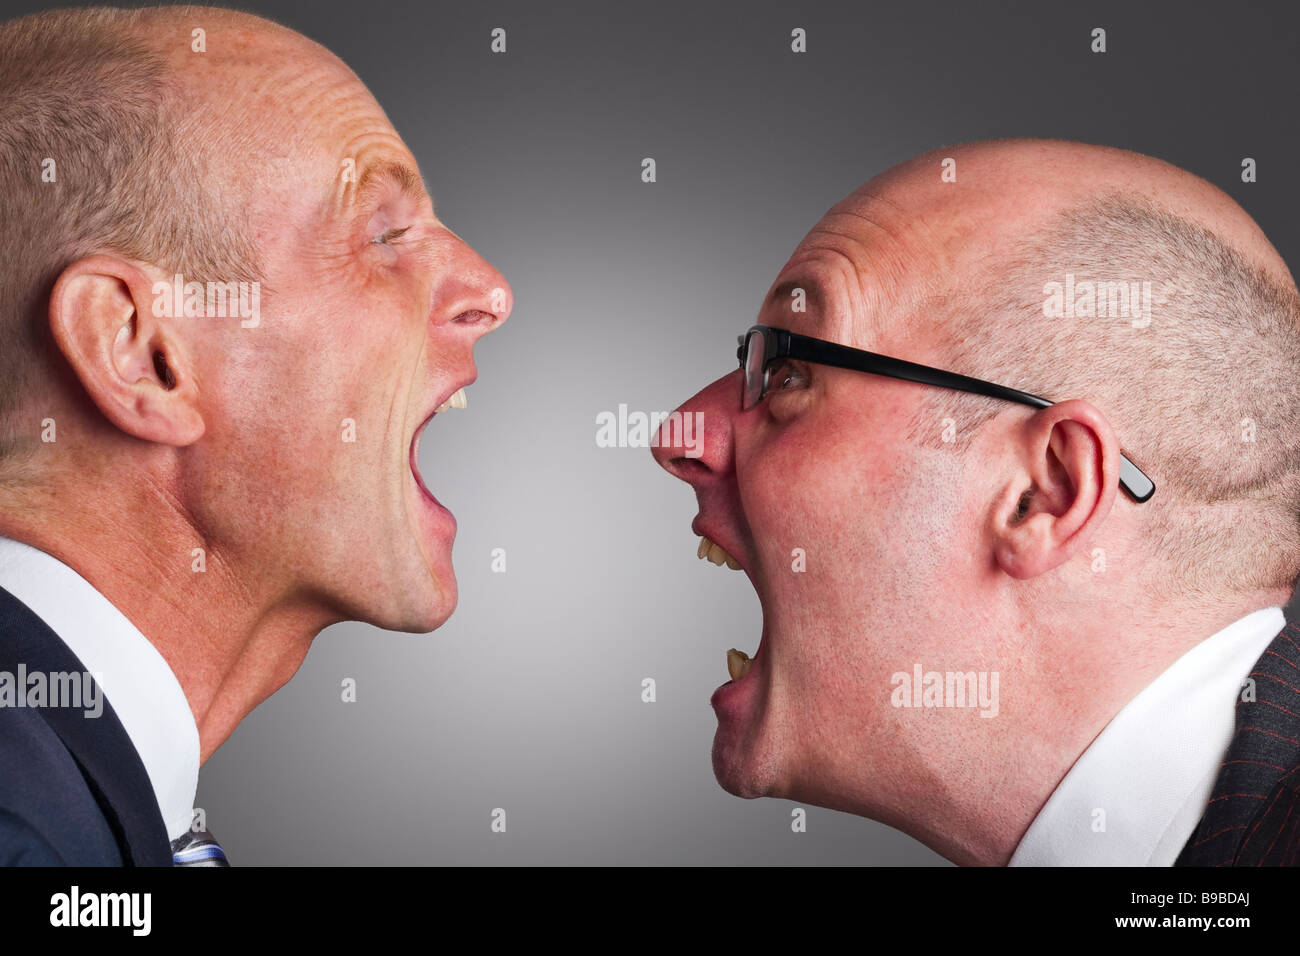 Two businessmen having an argument - Stock Image